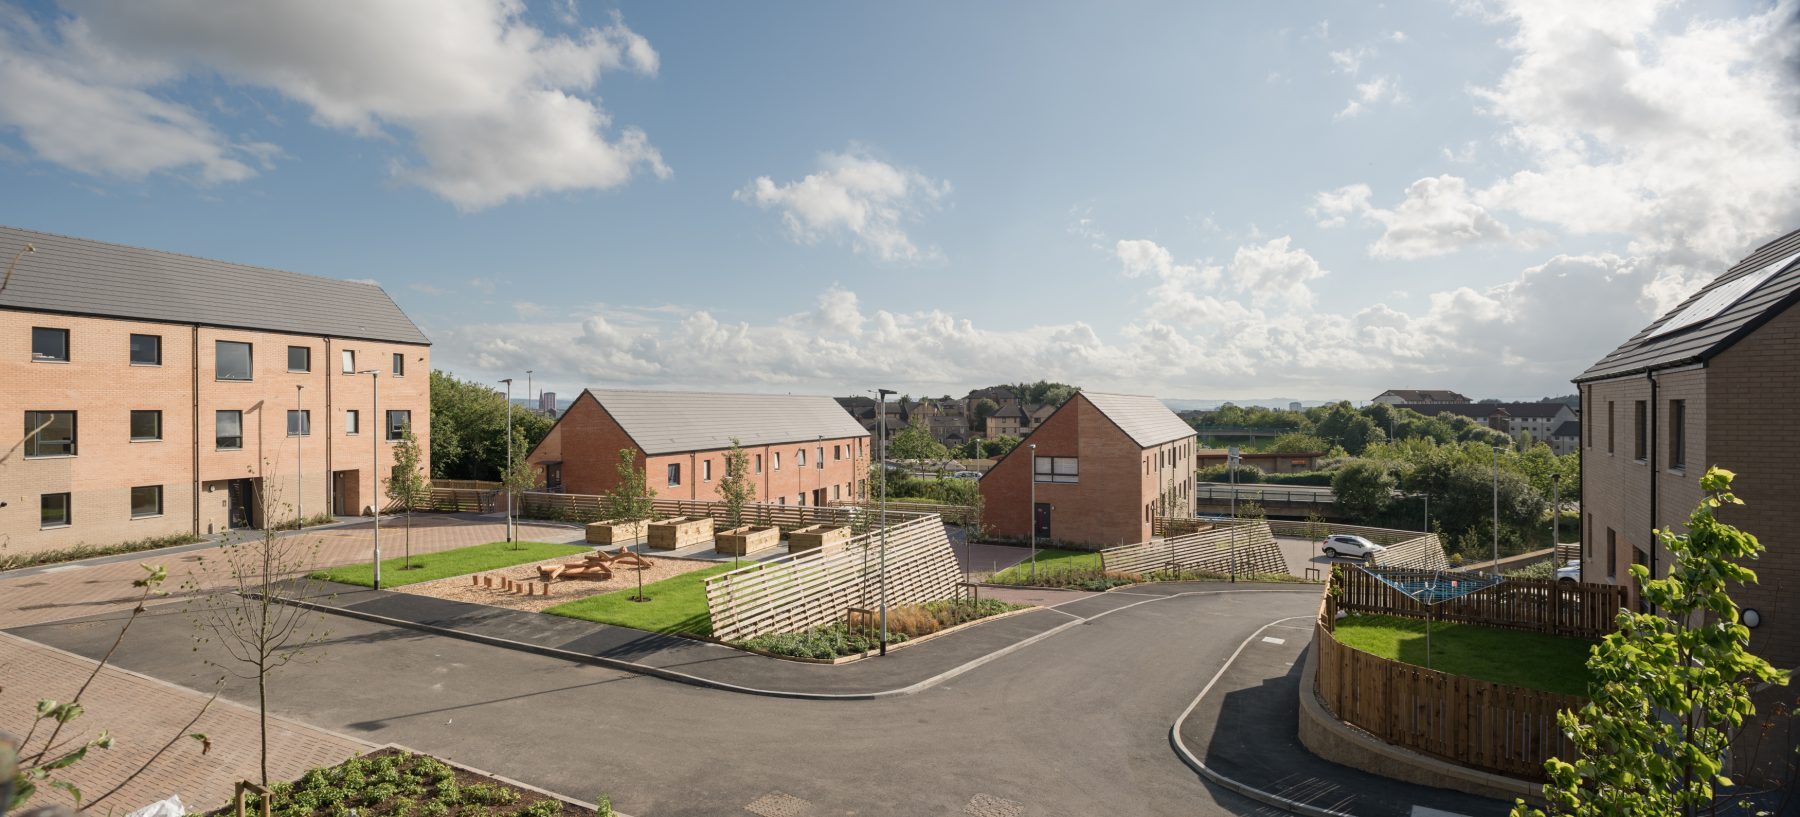 Barclay Street Housing for Lorreto Housing Association